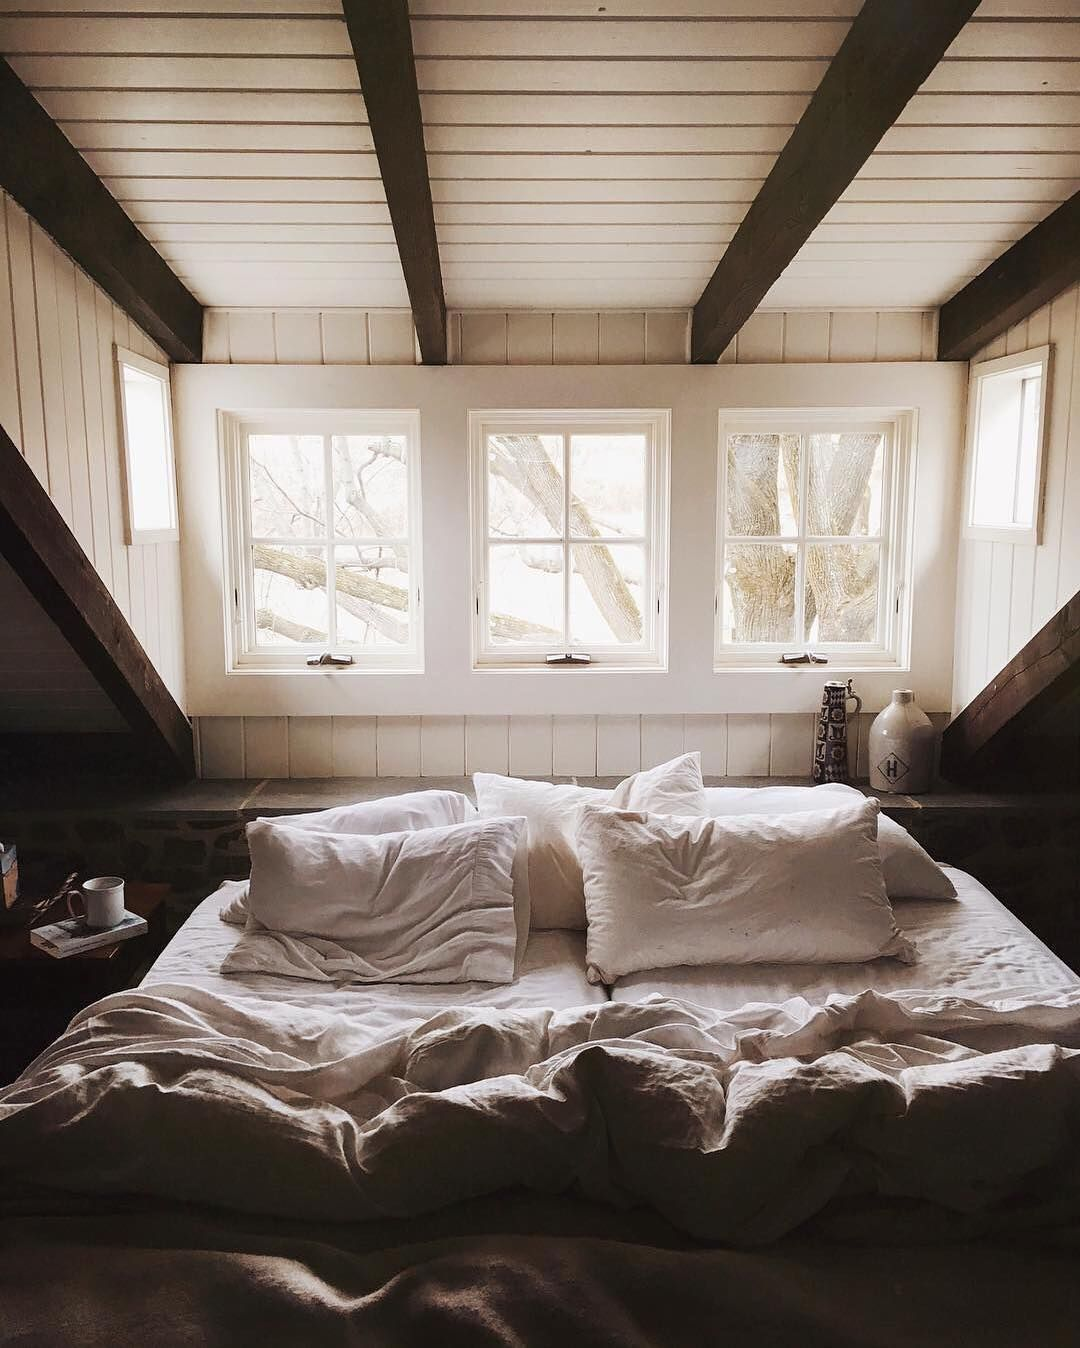 Already Dreaming Of Lazy Mornings And Weekend Naps Image Forestbound Tagged With Apartmenttherapy